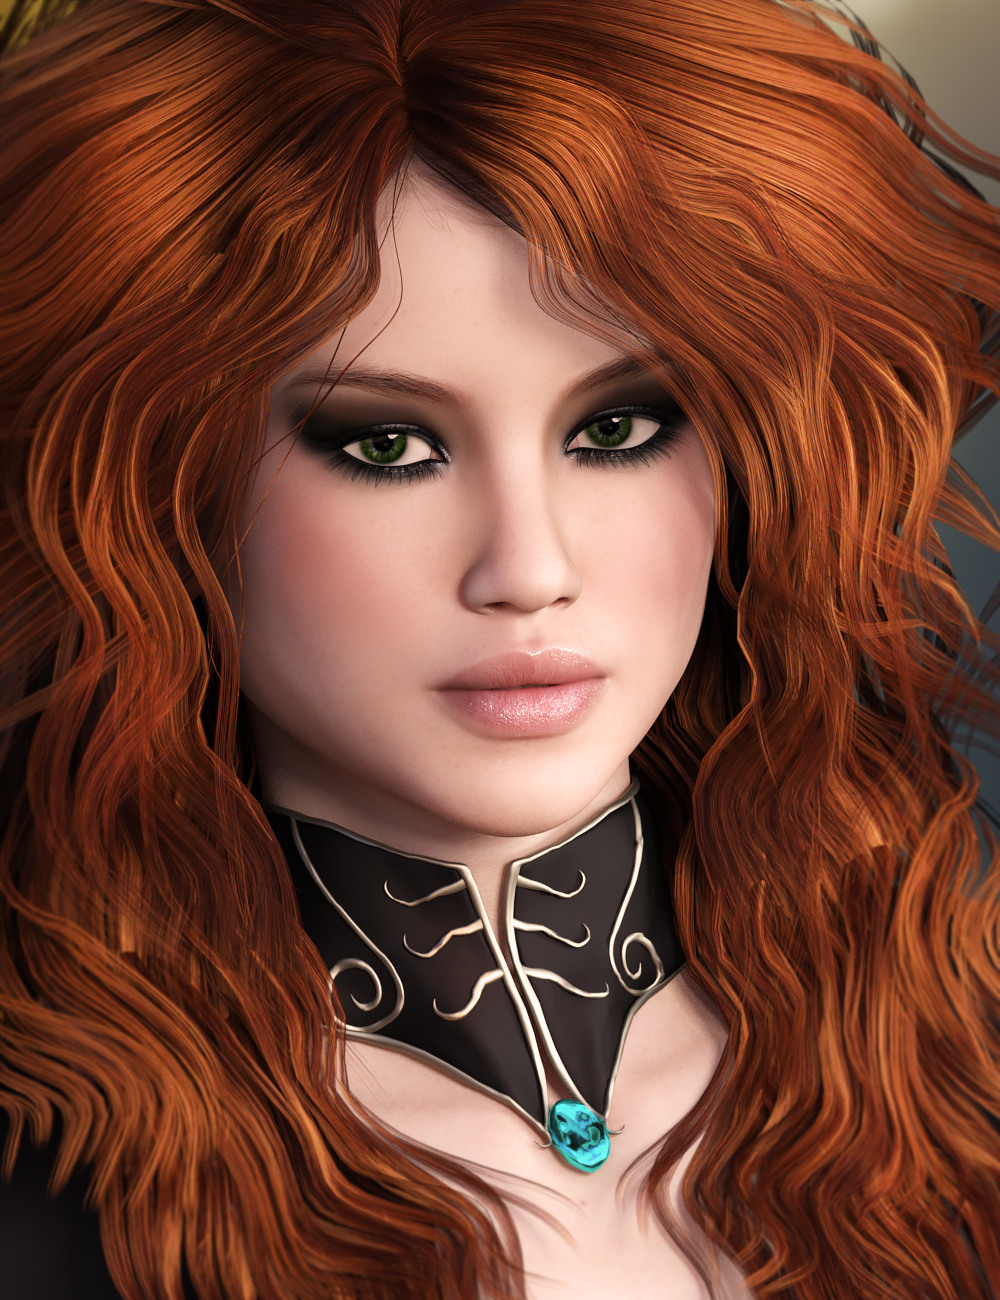 Emma Claire for Ophelia 7 & Genesis 3 Female by: 3DSublimeProductions, 3D Models by Daz 3D